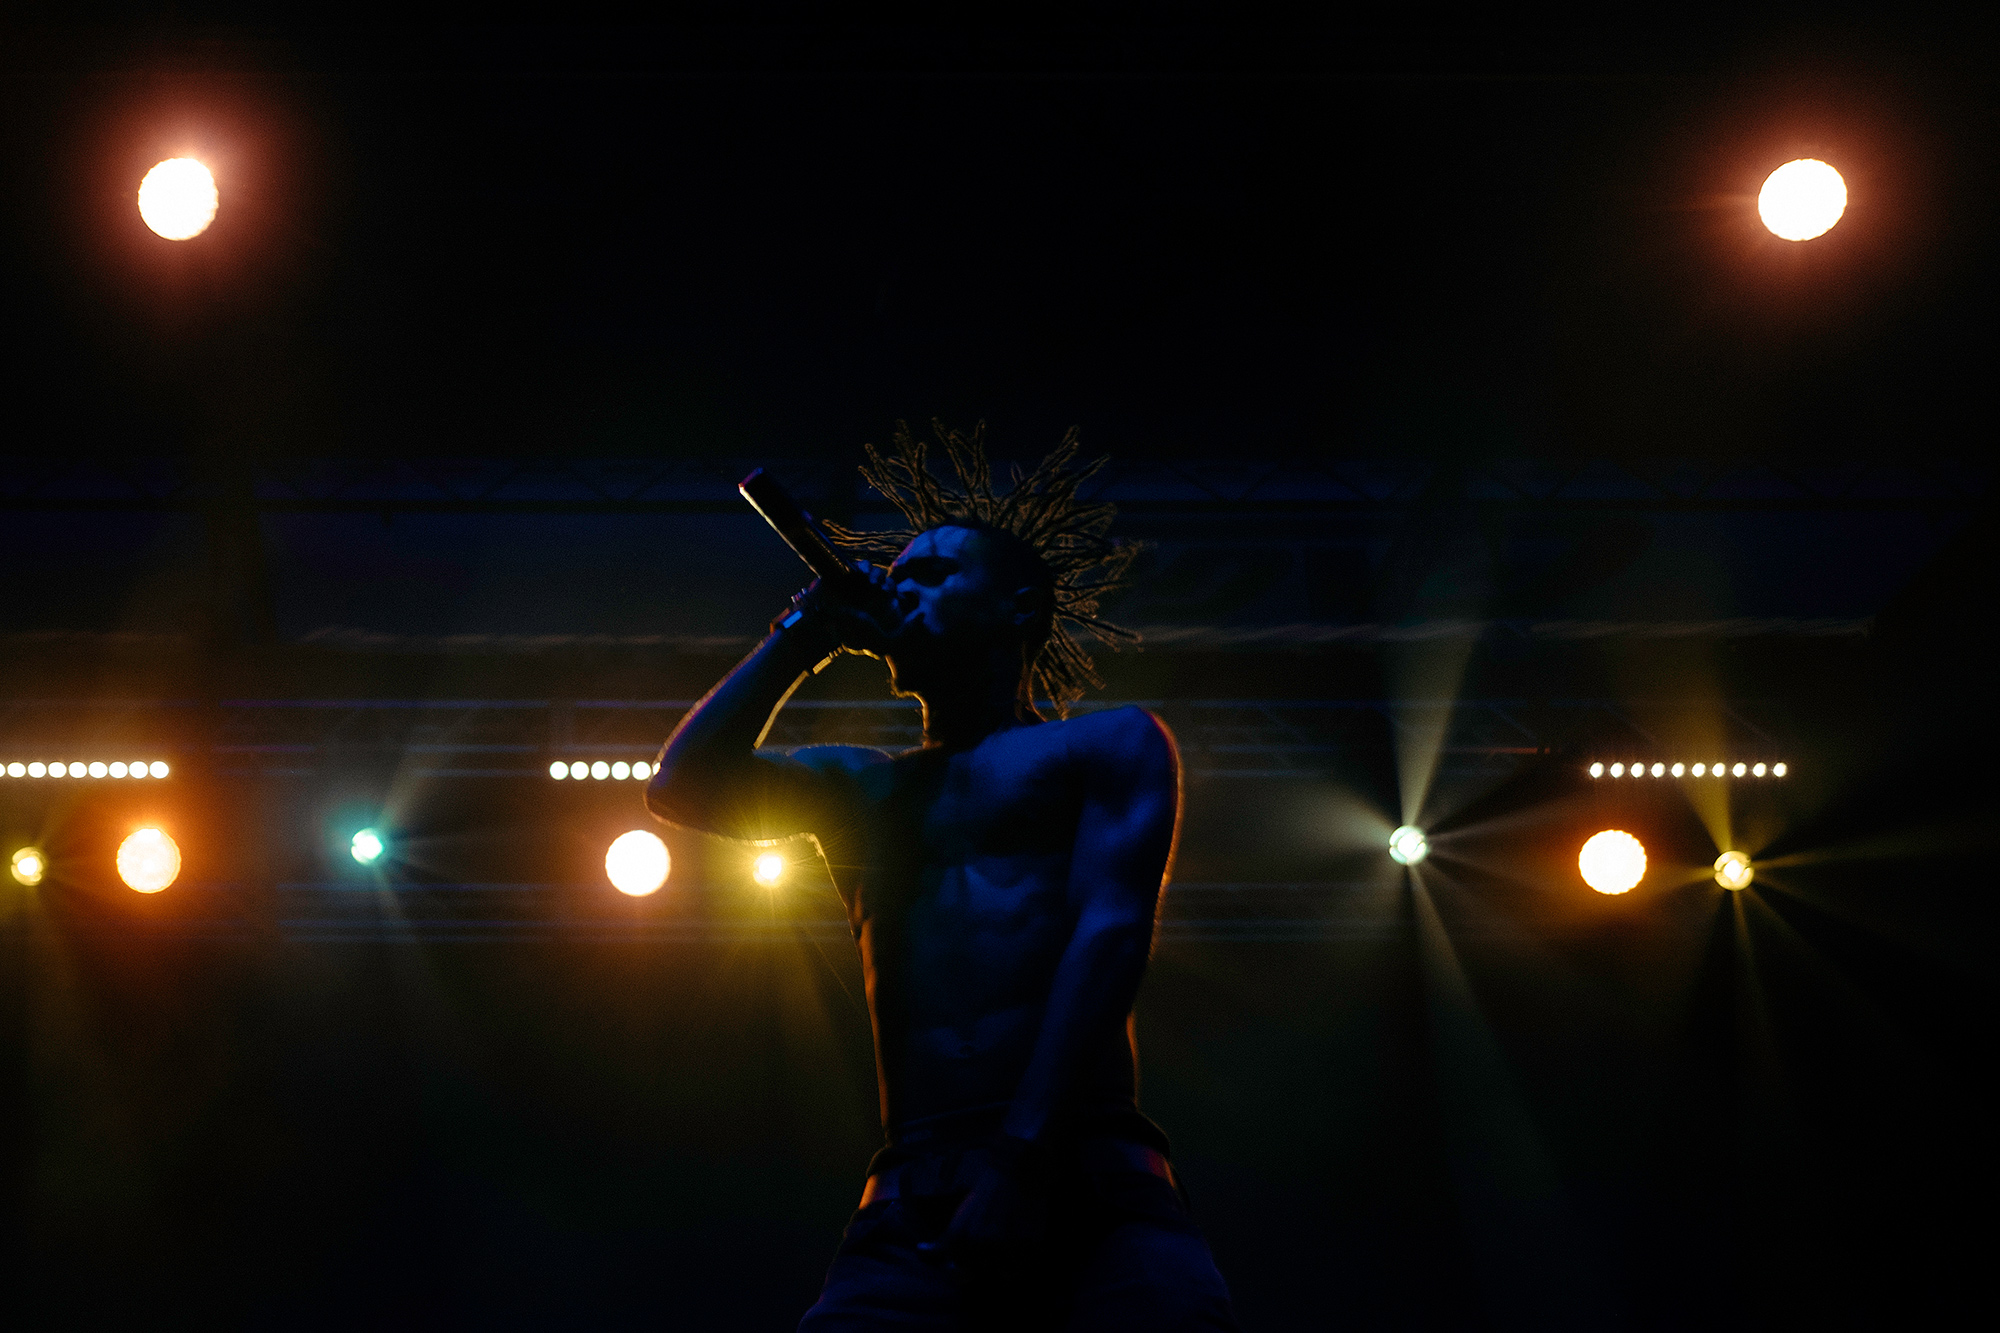 Swae Lee of hip hop duo, Rae Sremmurd, performs at Fun Fun Fun Festival in Austin, Texas,  photographed by Houston music photographer, Todd Spoth.